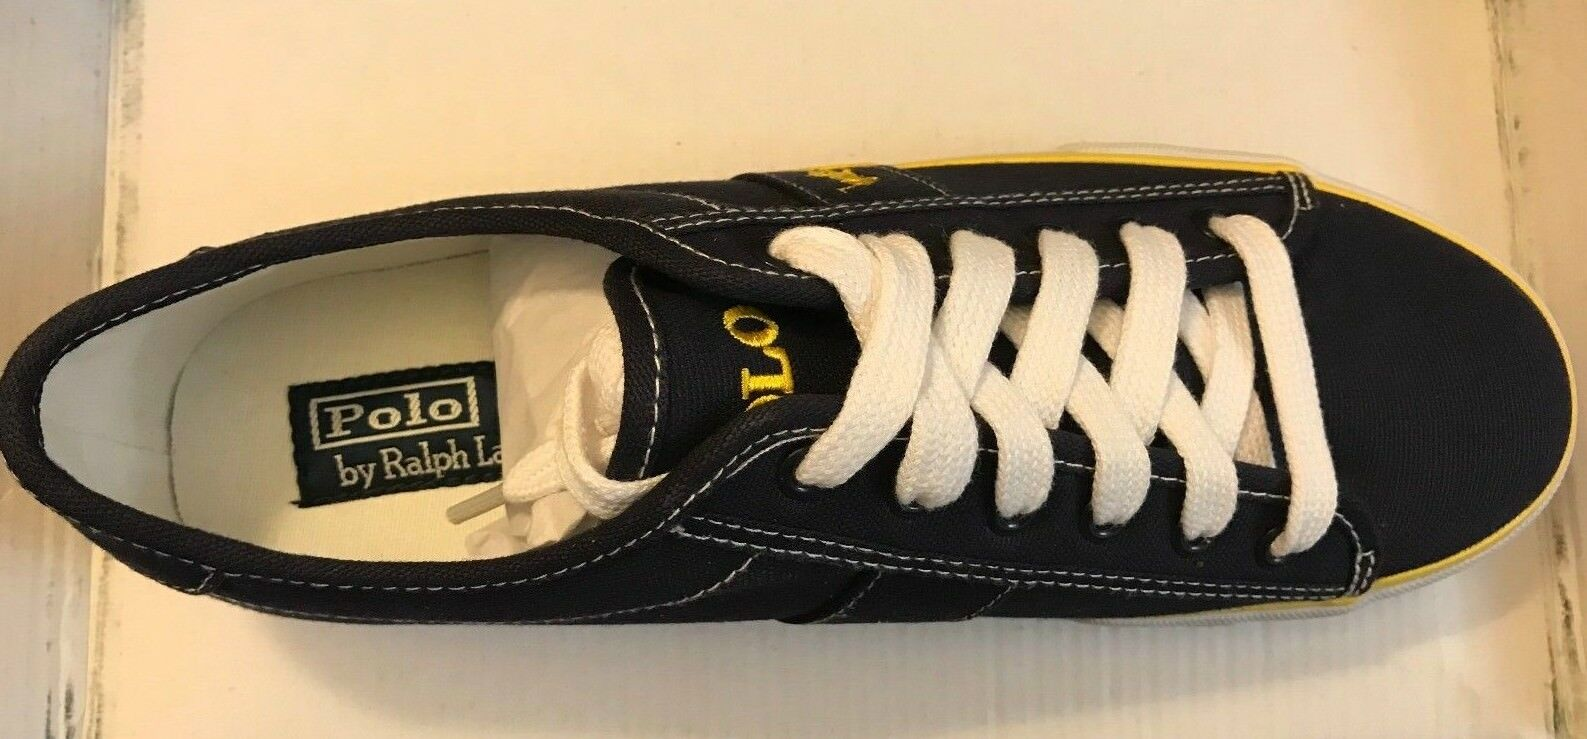 POLO RALPH LAUREN TRAINERS SIZE BOX 42/43 BRAND NEW WITH BOX SIZE 5c519e